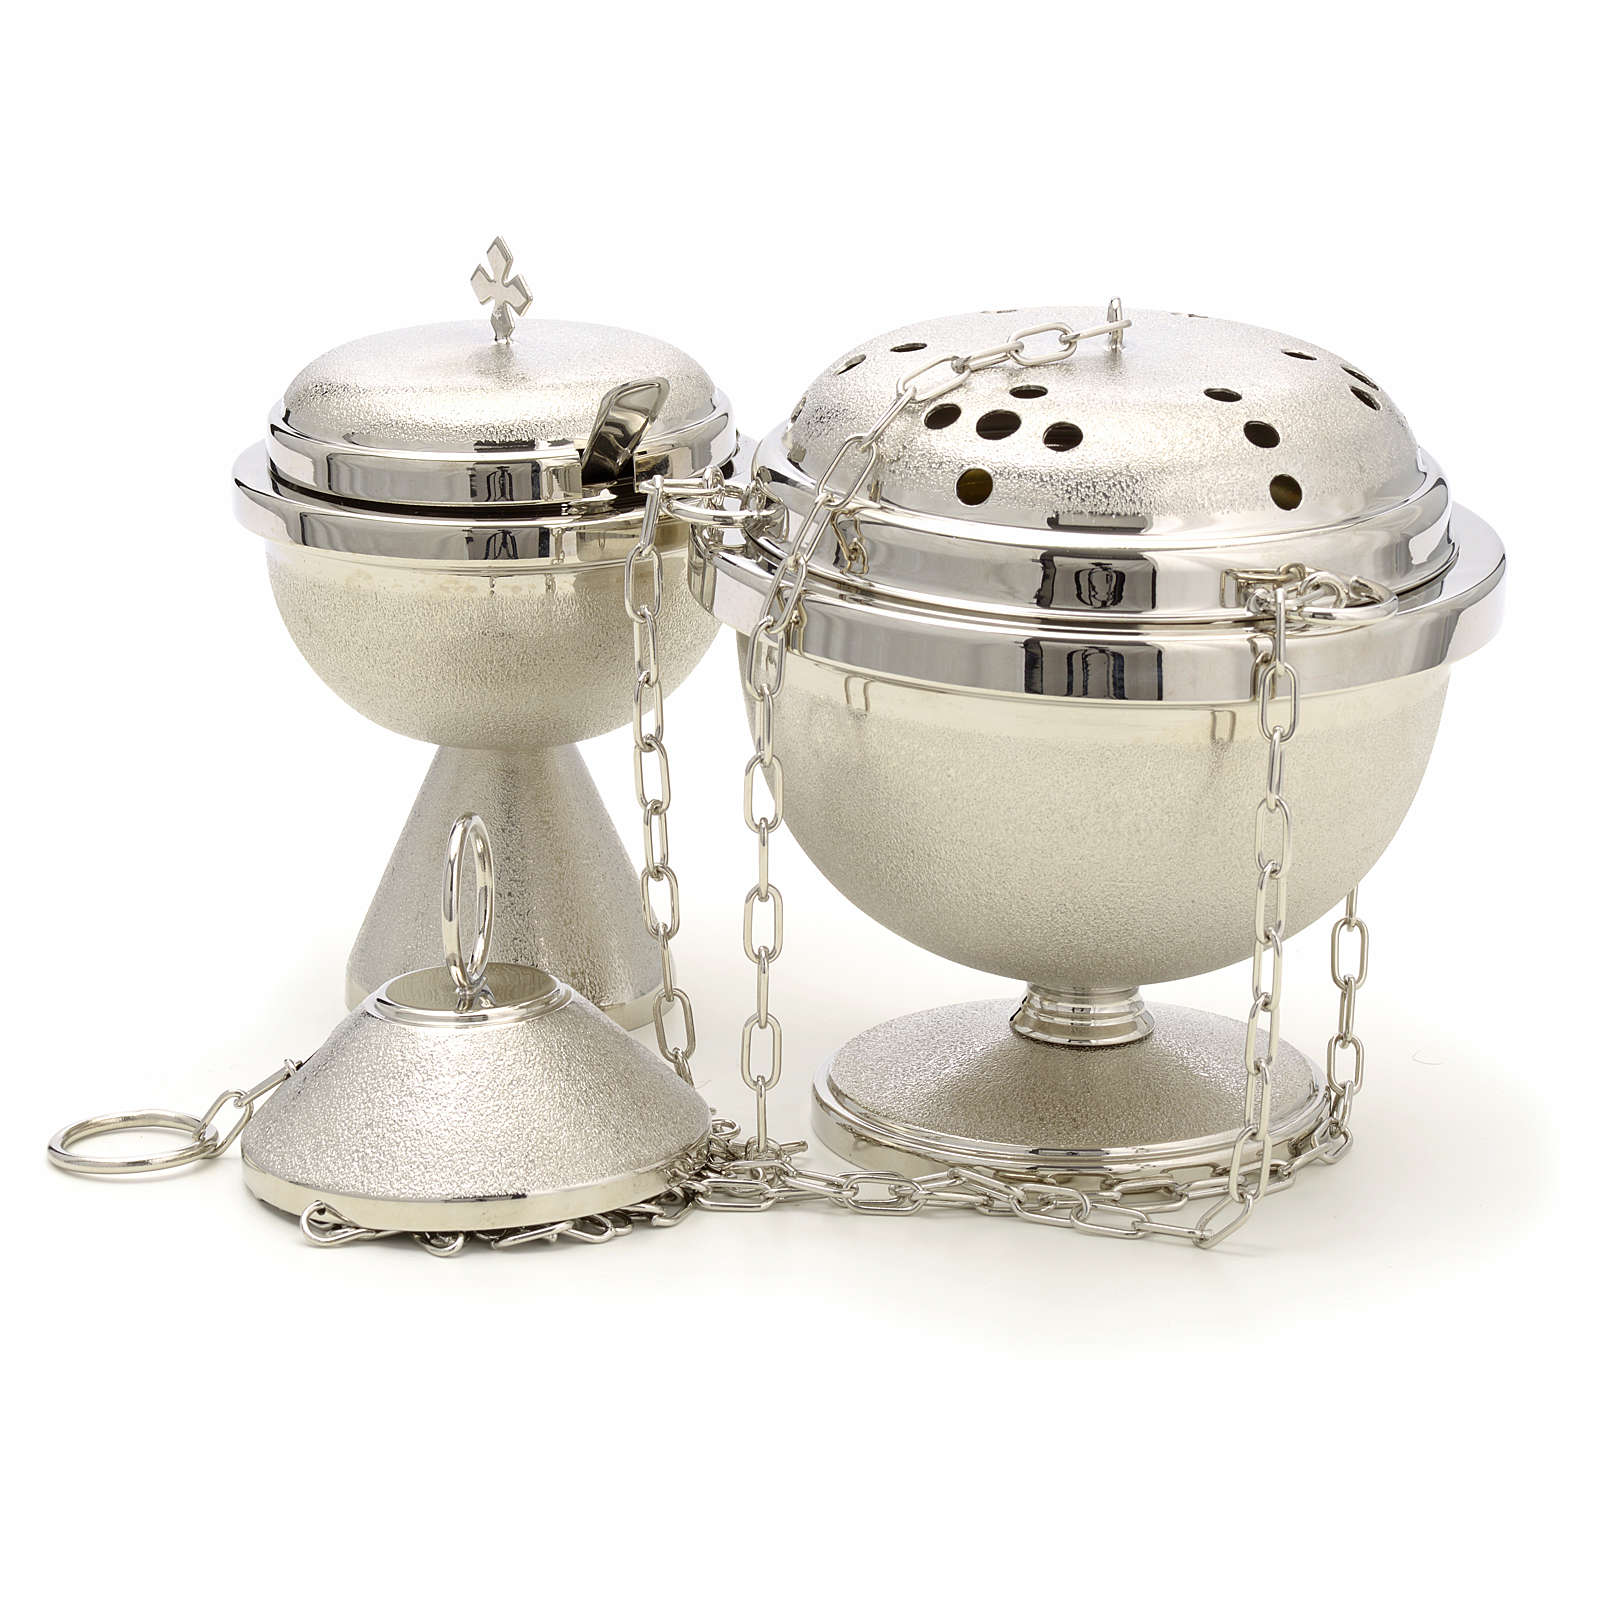 Censer and boat in nickel plated brass 3